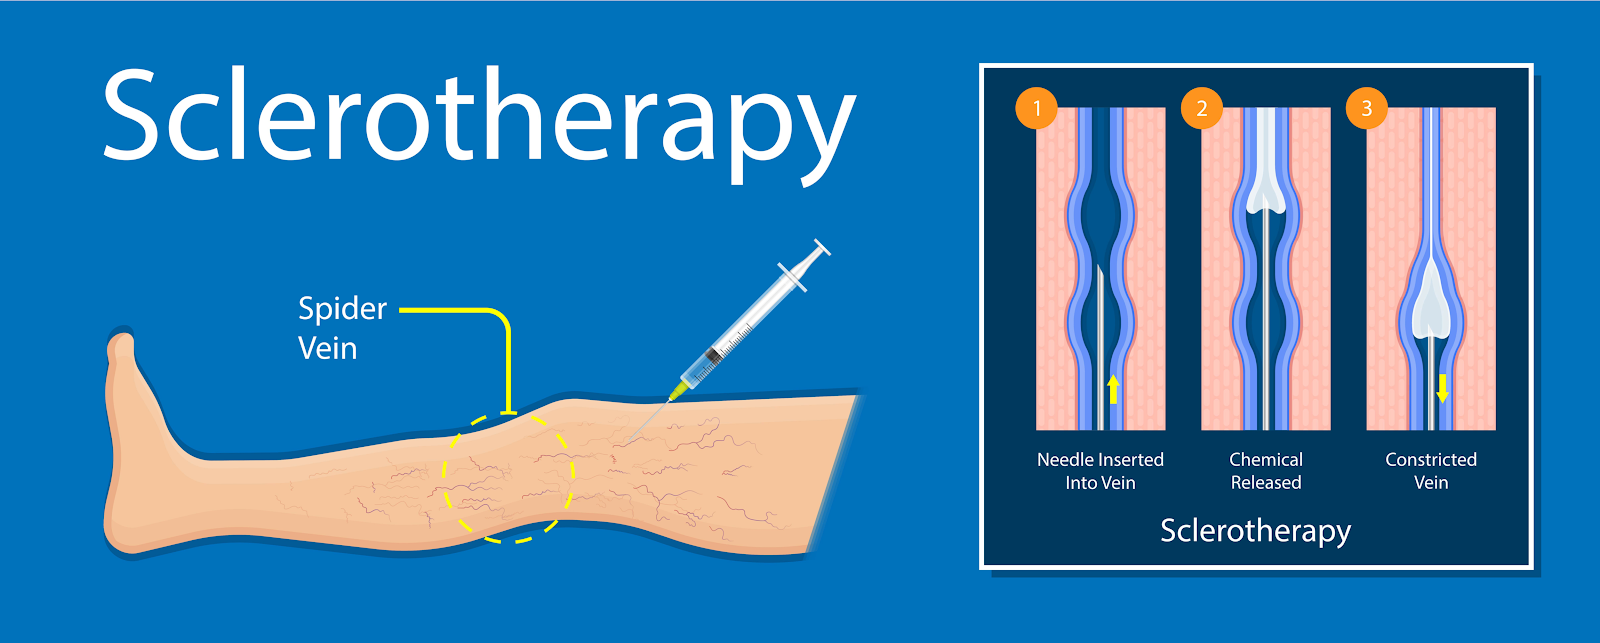 Infographic displaying the sclerotherapy process